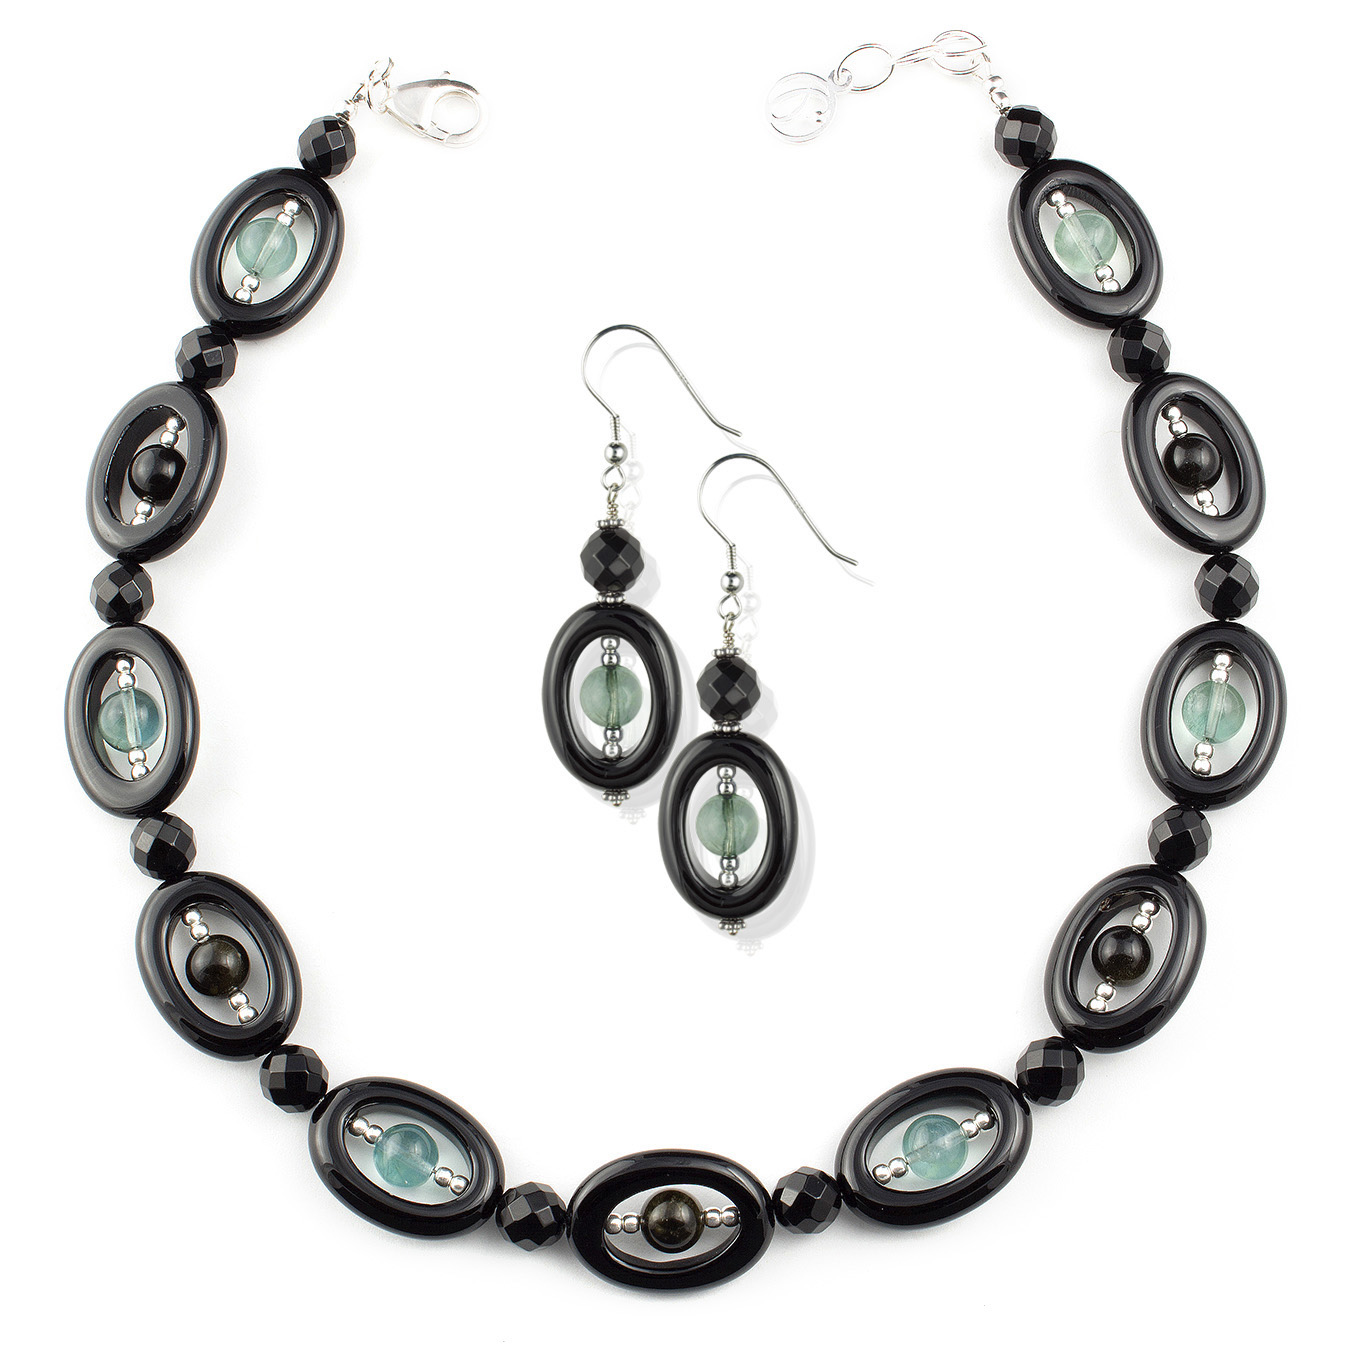 Create your own choker necklace with obsidian, fluorite and agate